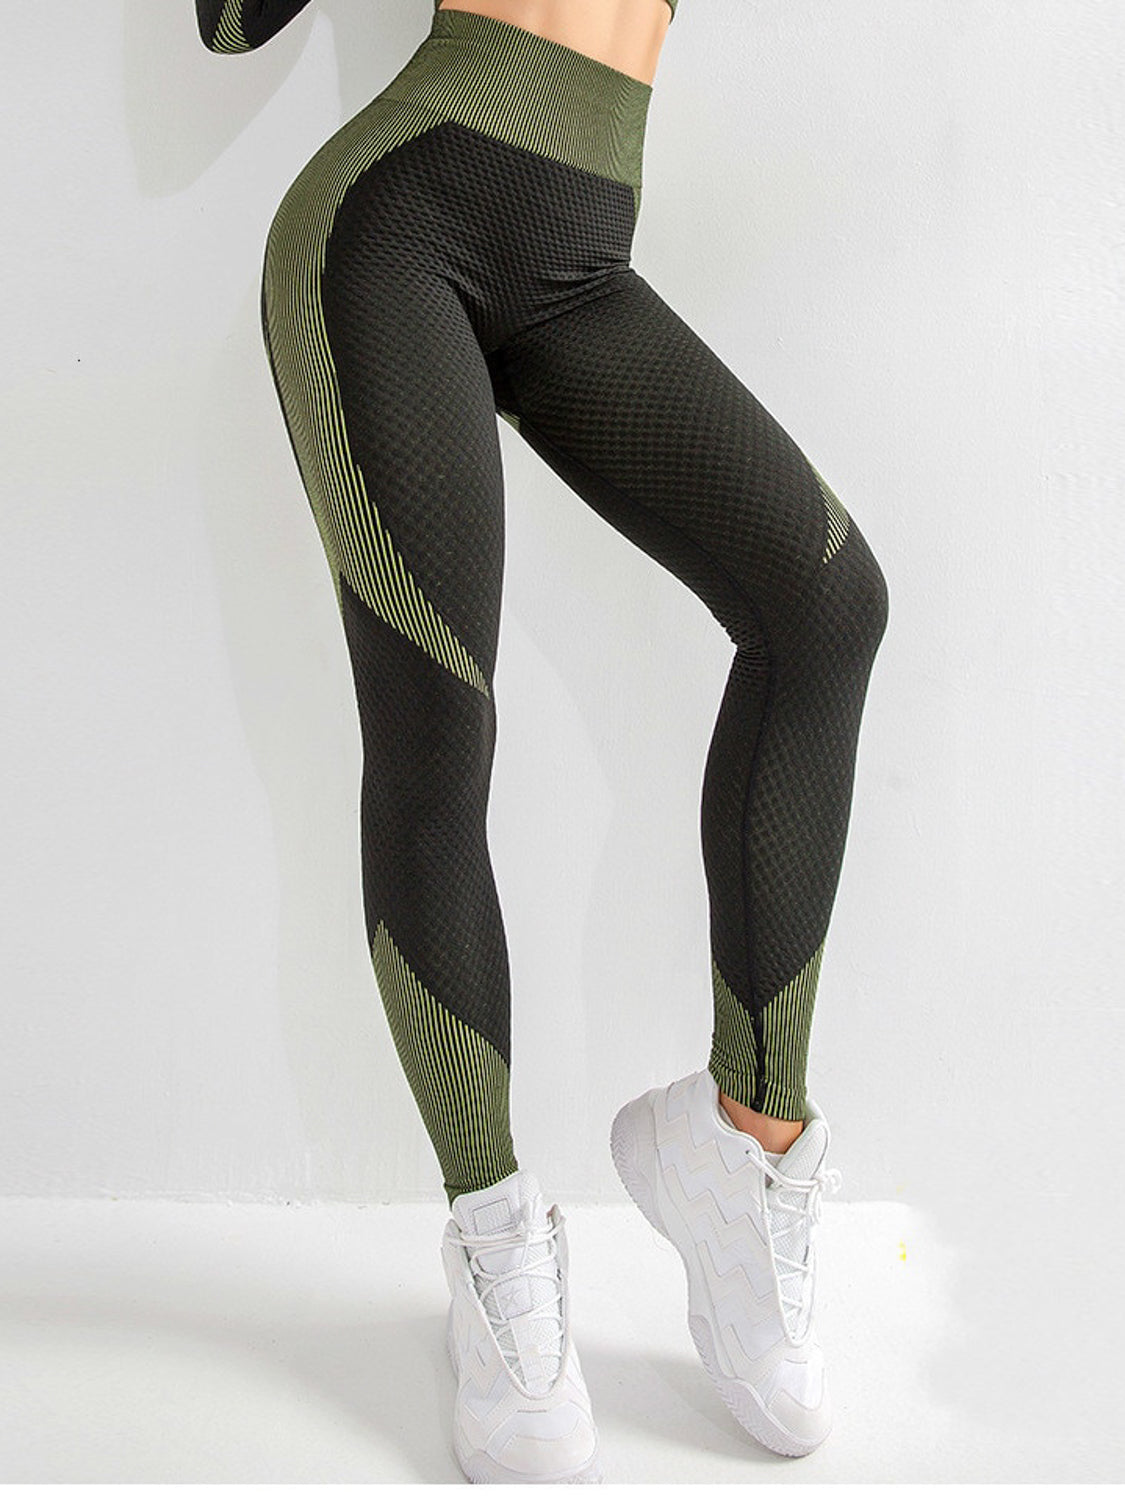 MOVI ADAPT LEGGINGS - Black/Green